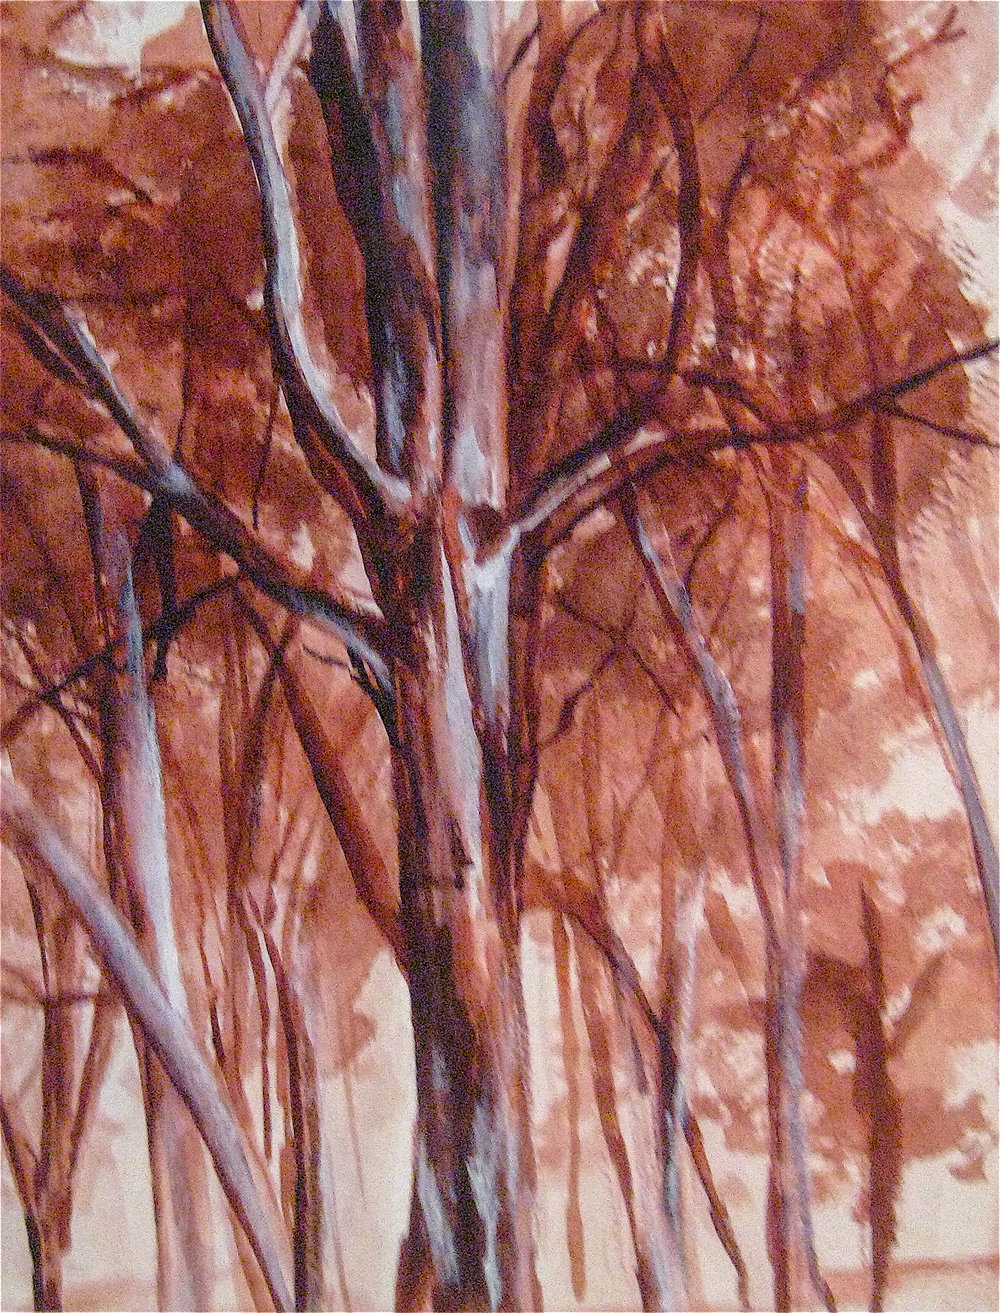 Gum Tree Study, 2006, Ink & Pencil on Paper,  UNAVAILABLE